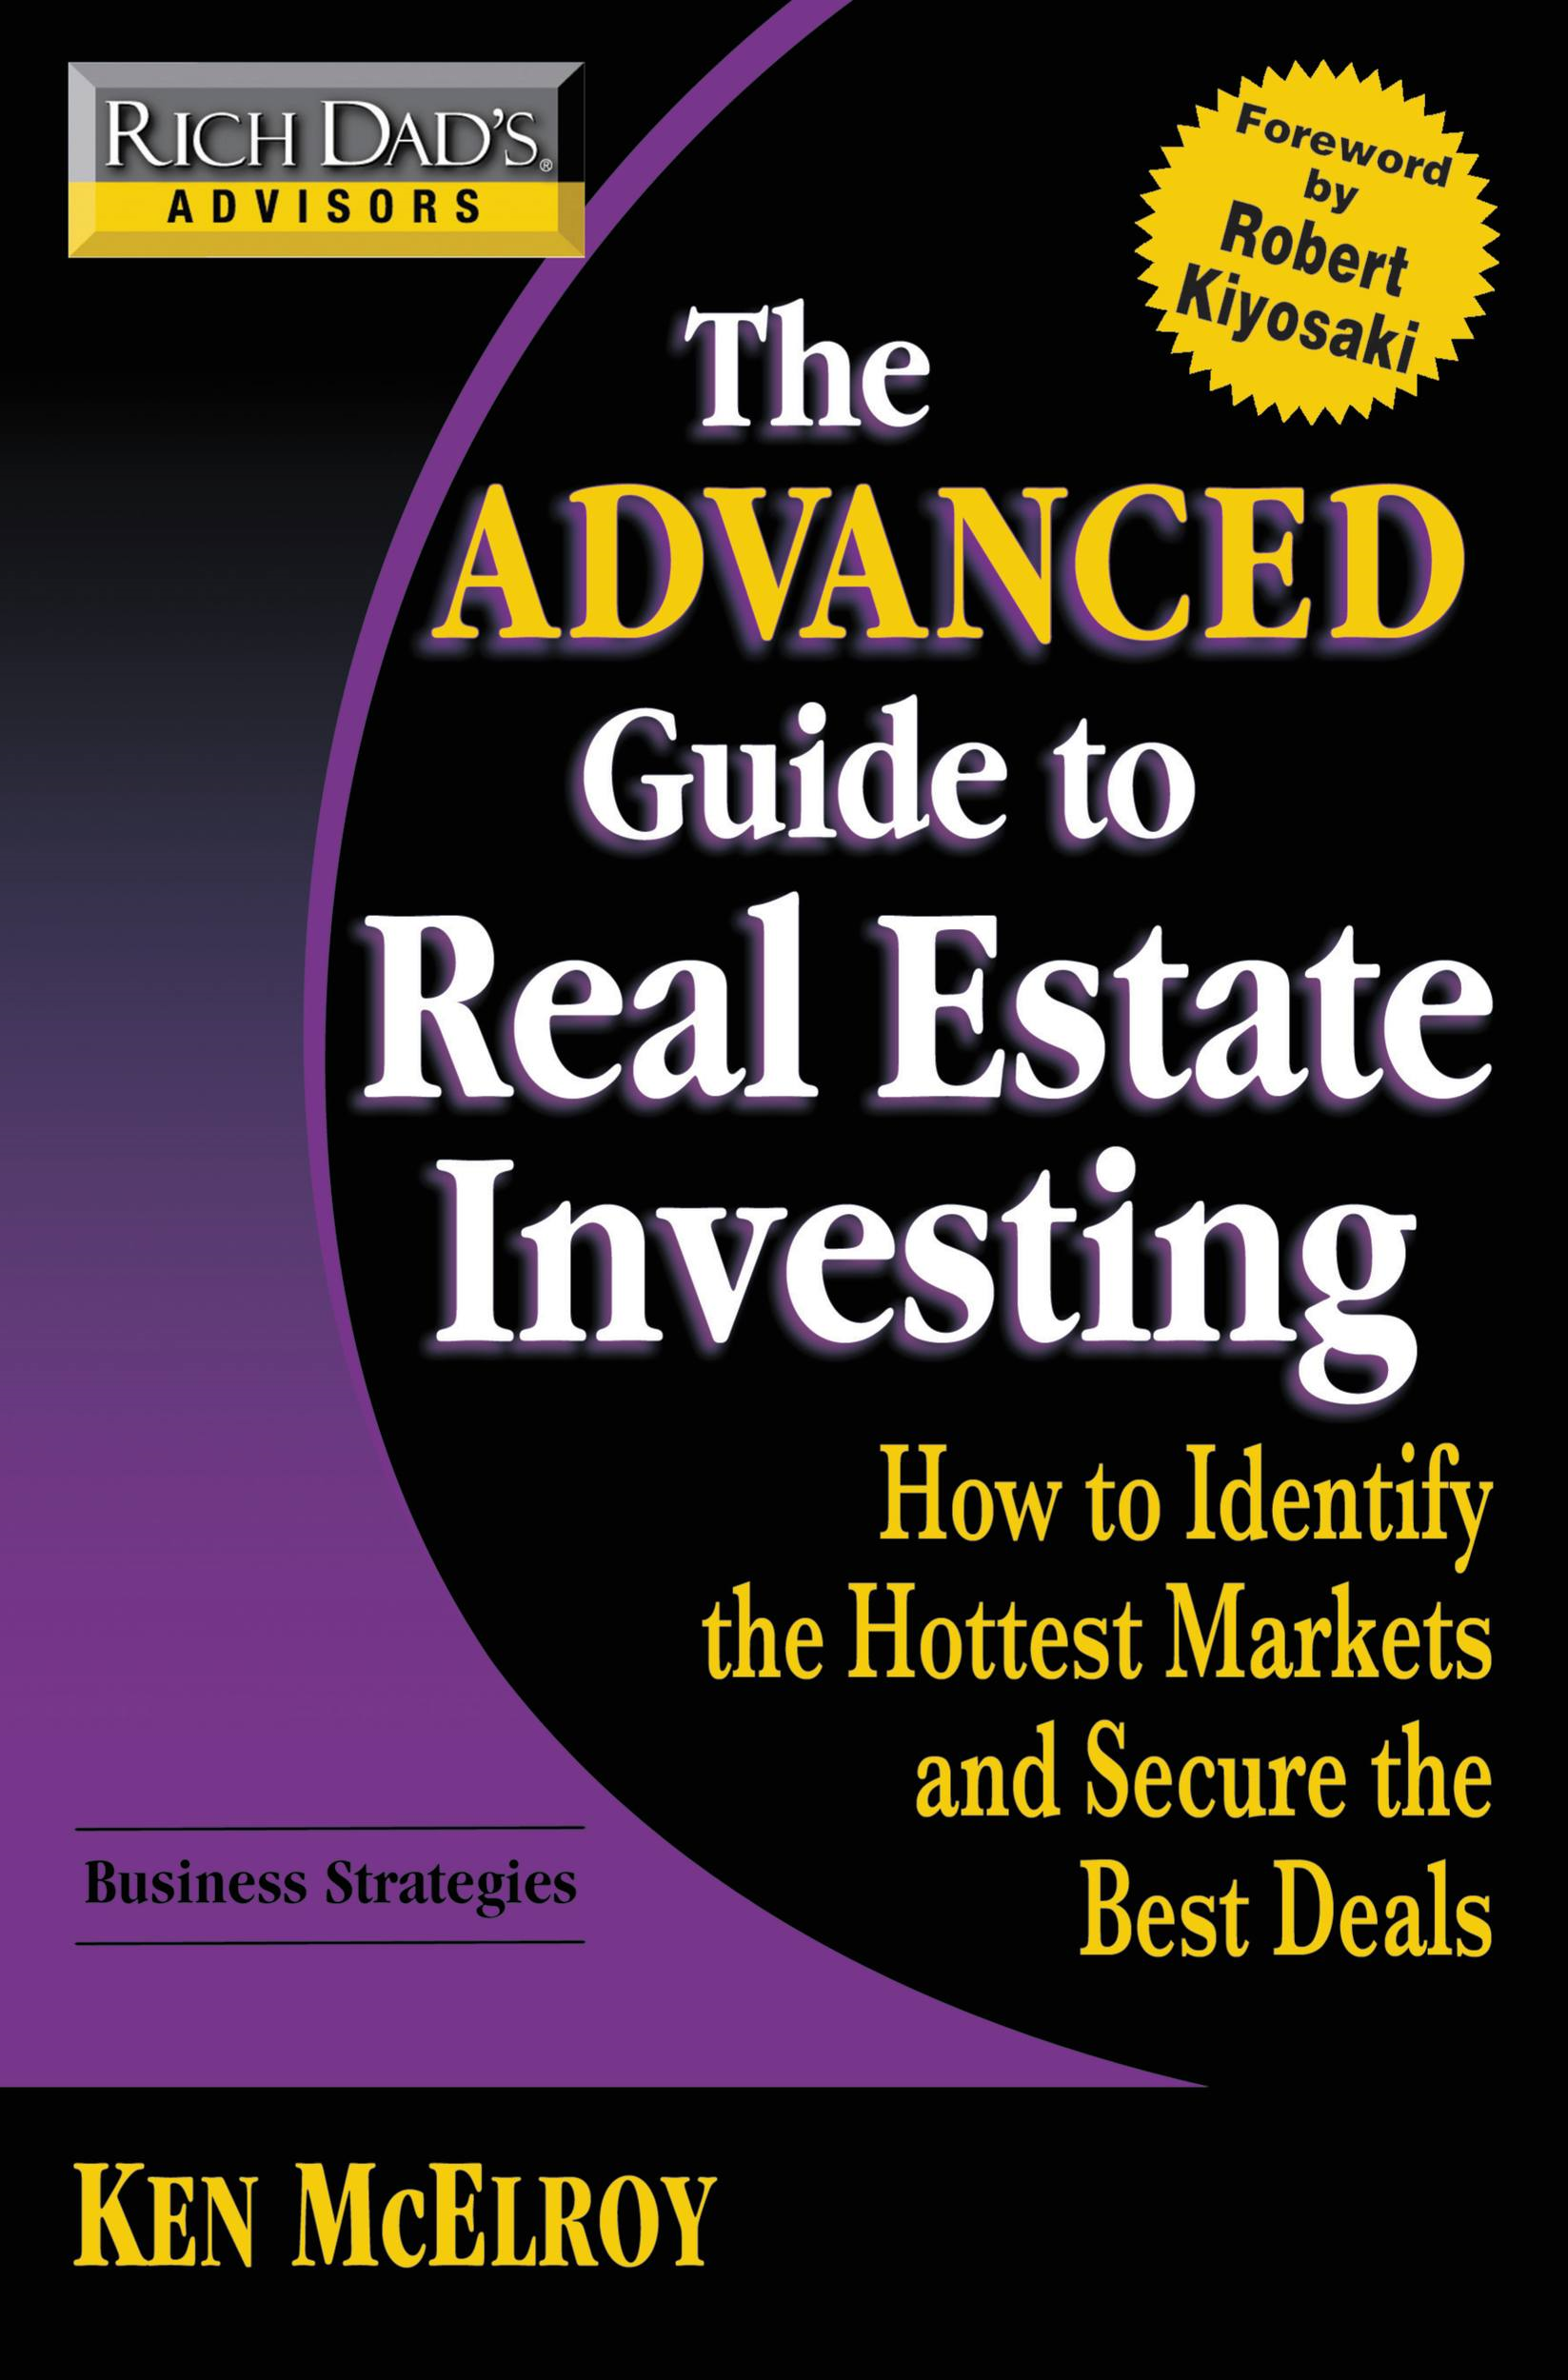 Rich Dad's Advisors: The Advanced Guide to Real Estate Investing By: Ken McElroy